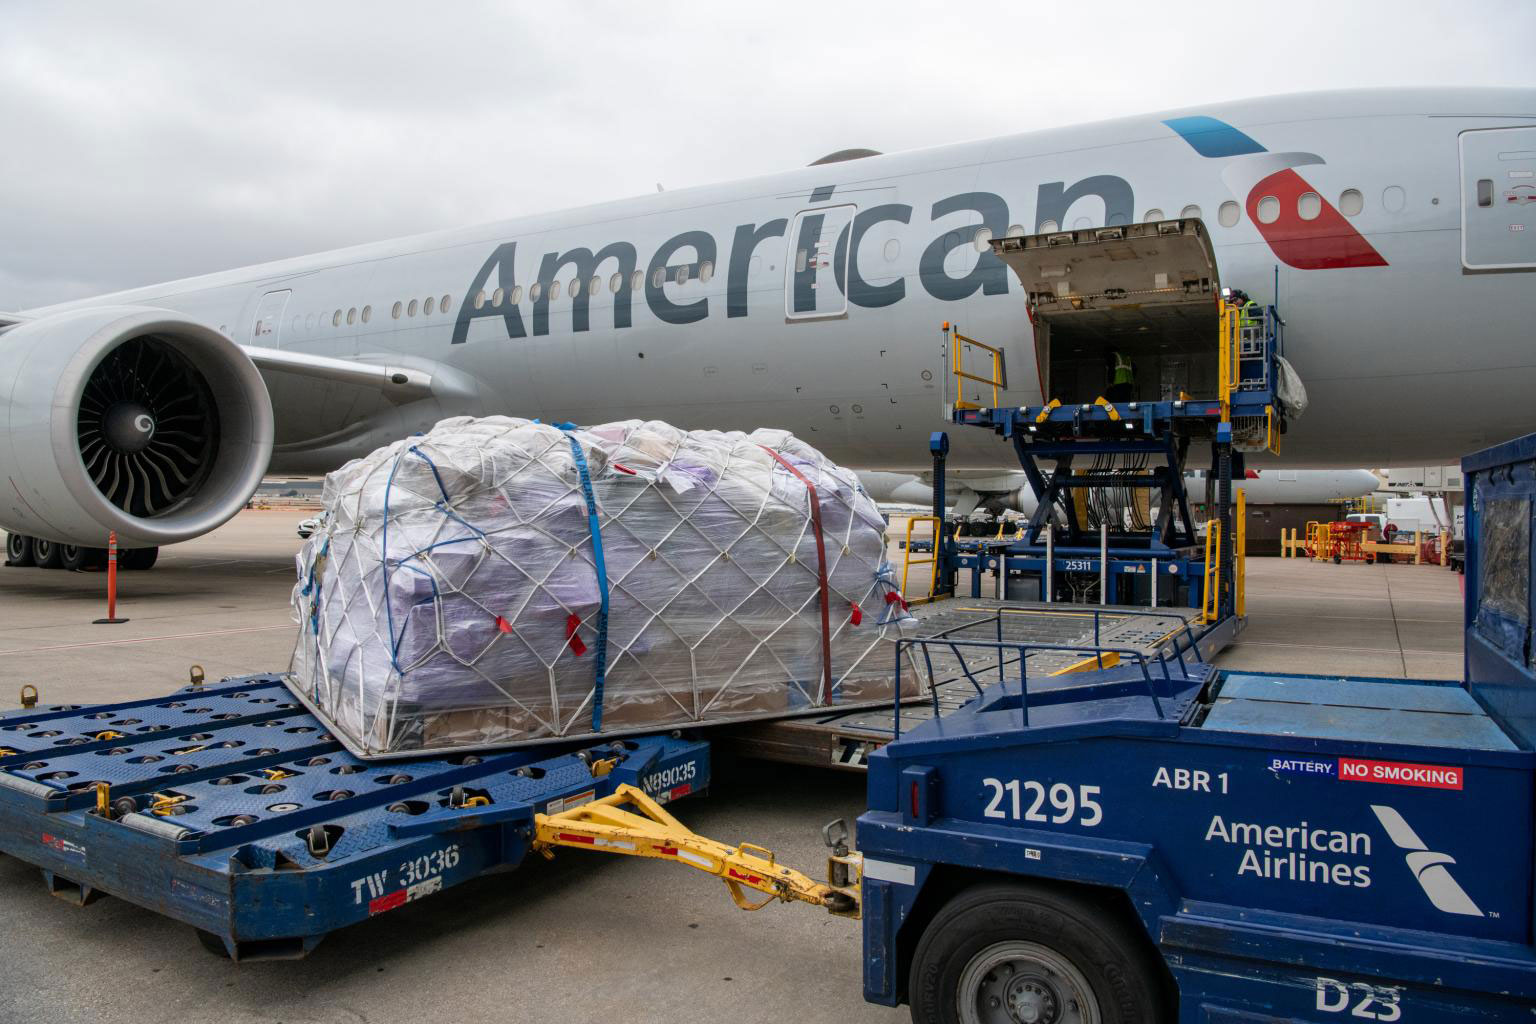 American Airlines' Boeing 777 passenger freighter